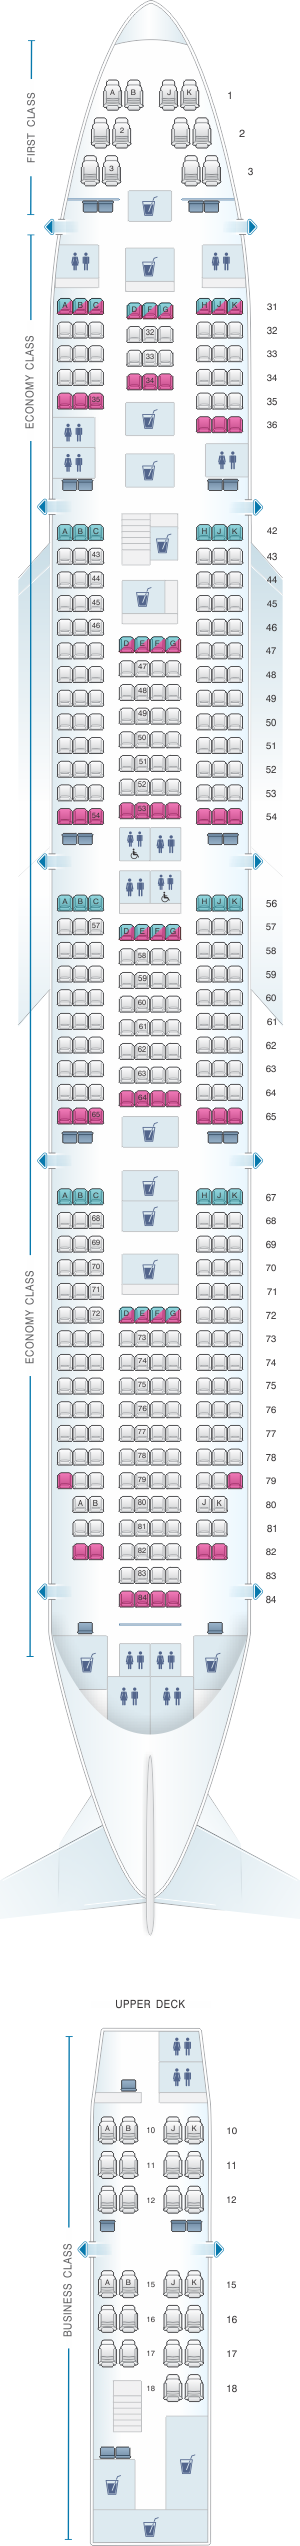 Seat map for Air India Boeing B747 400